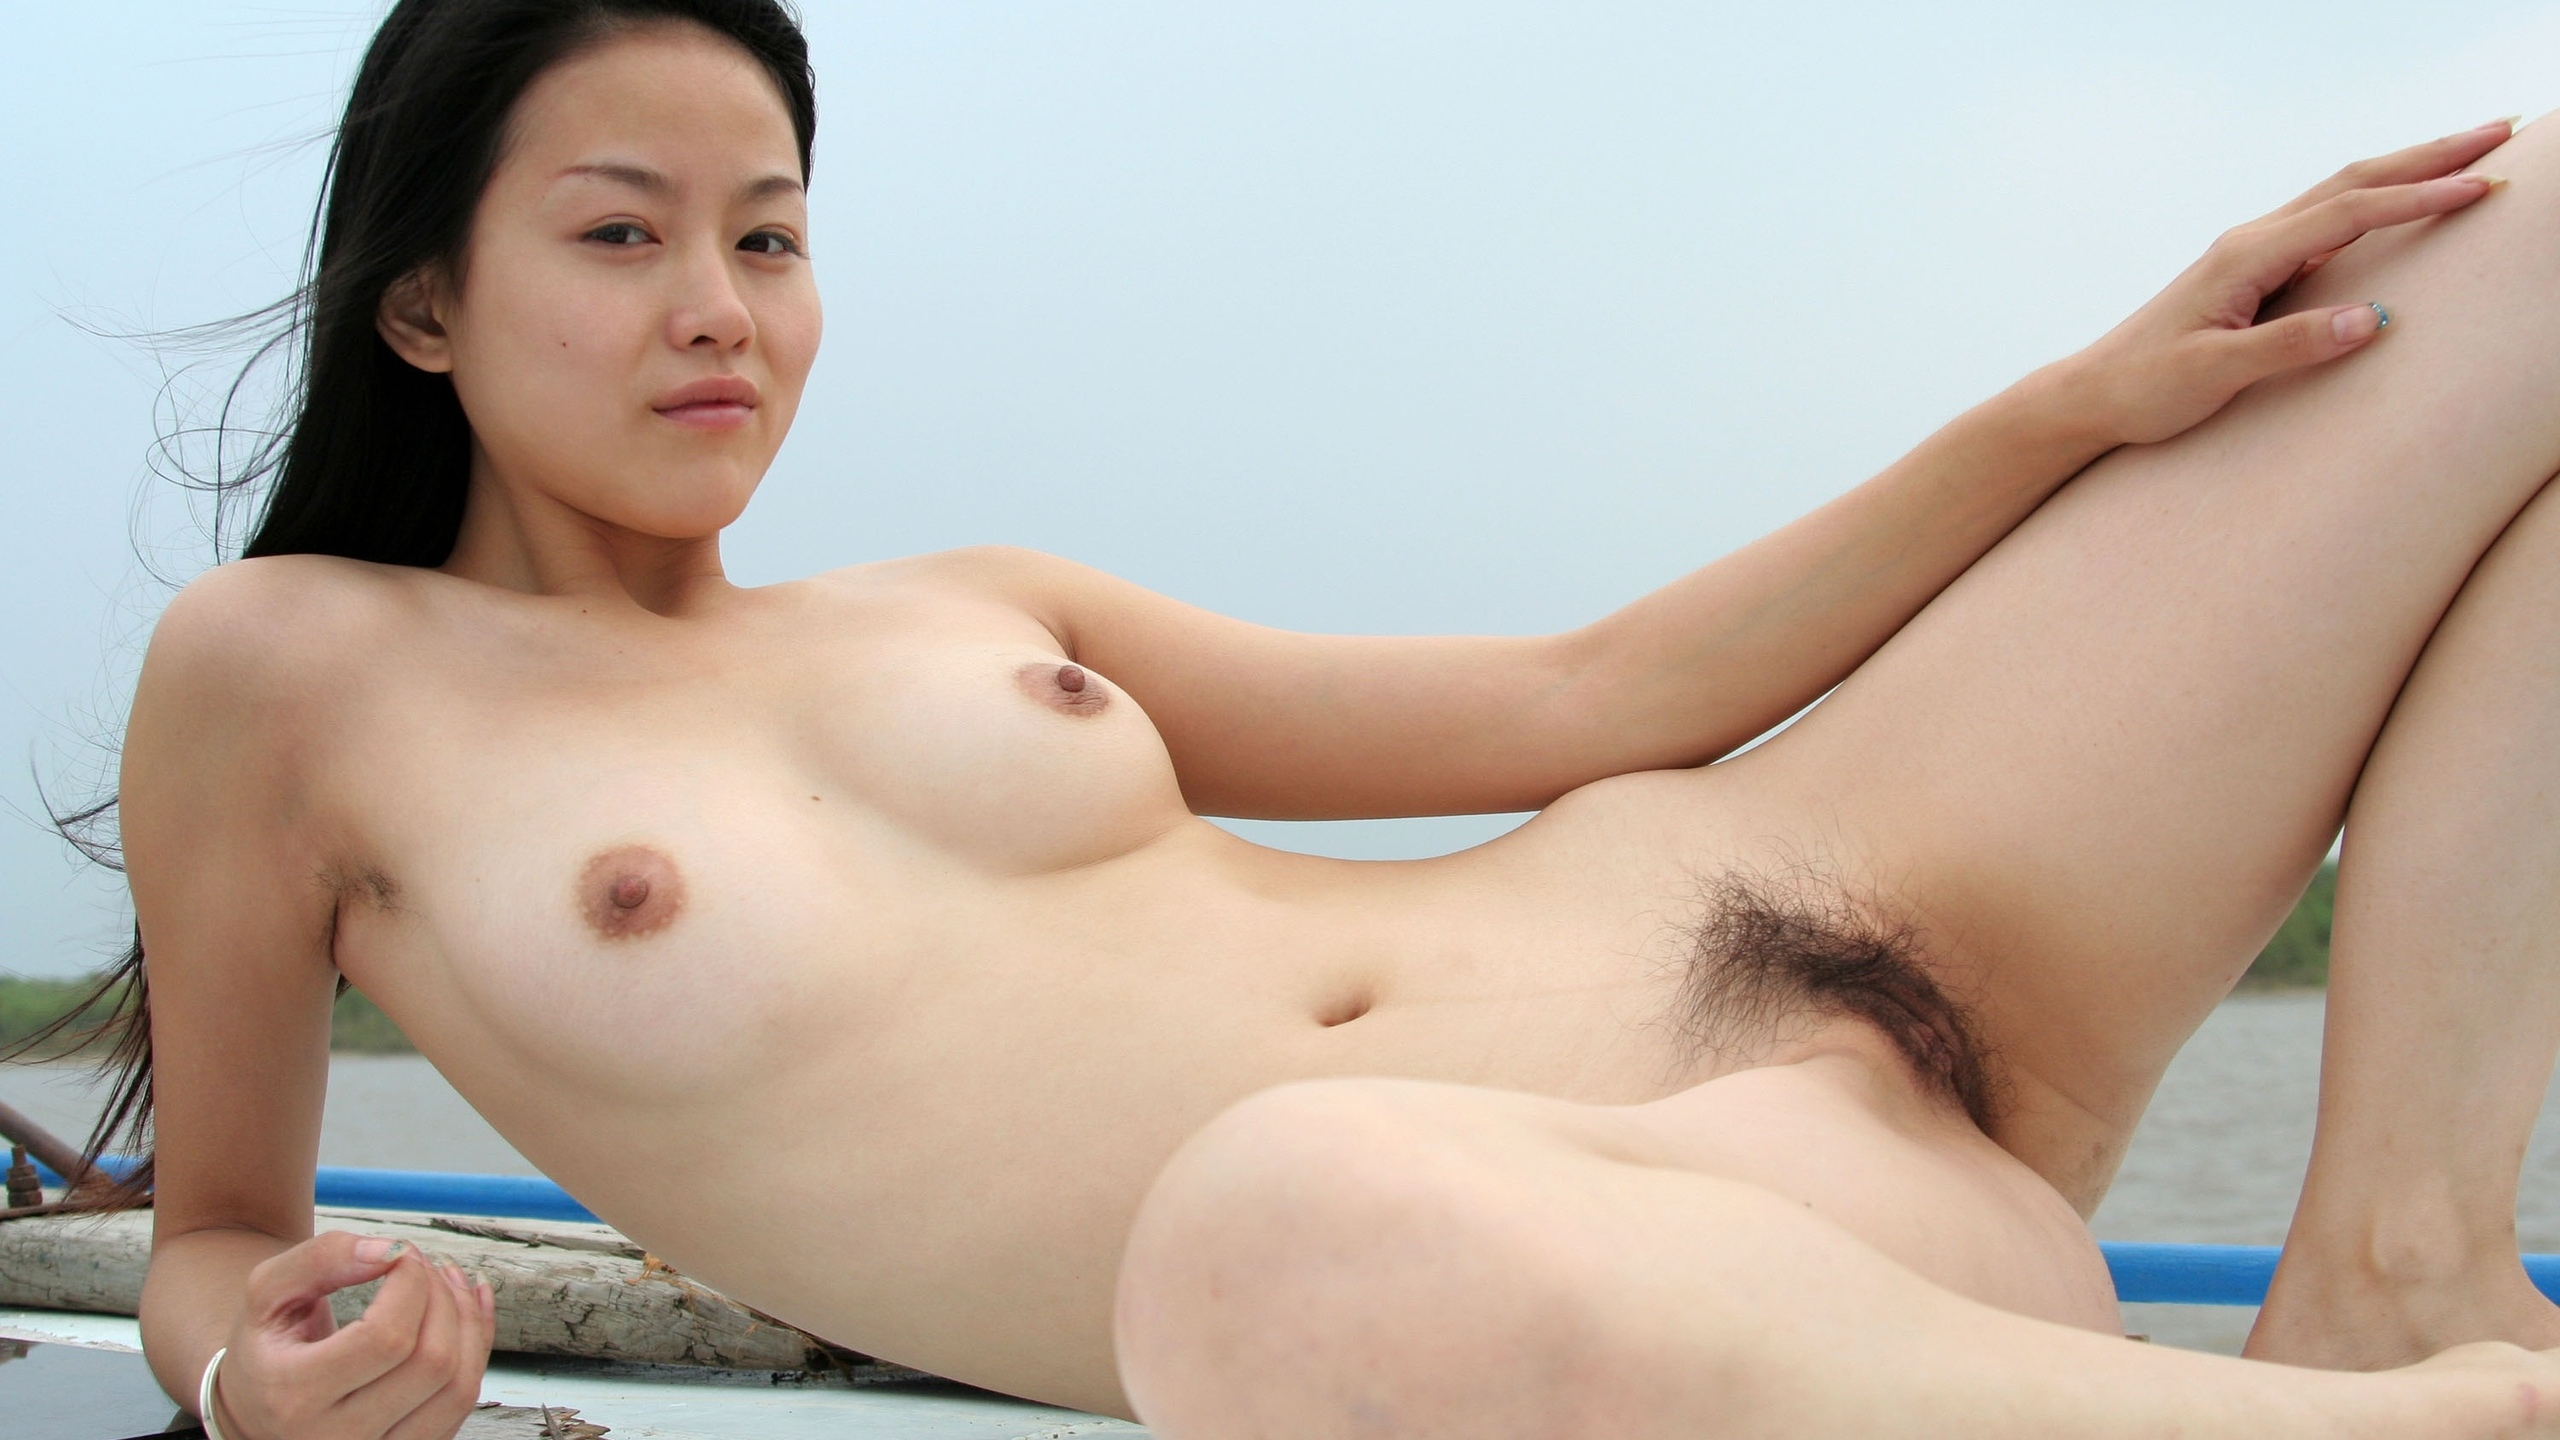 chinese-nude-pic-hot-dick-sex-naked-couple